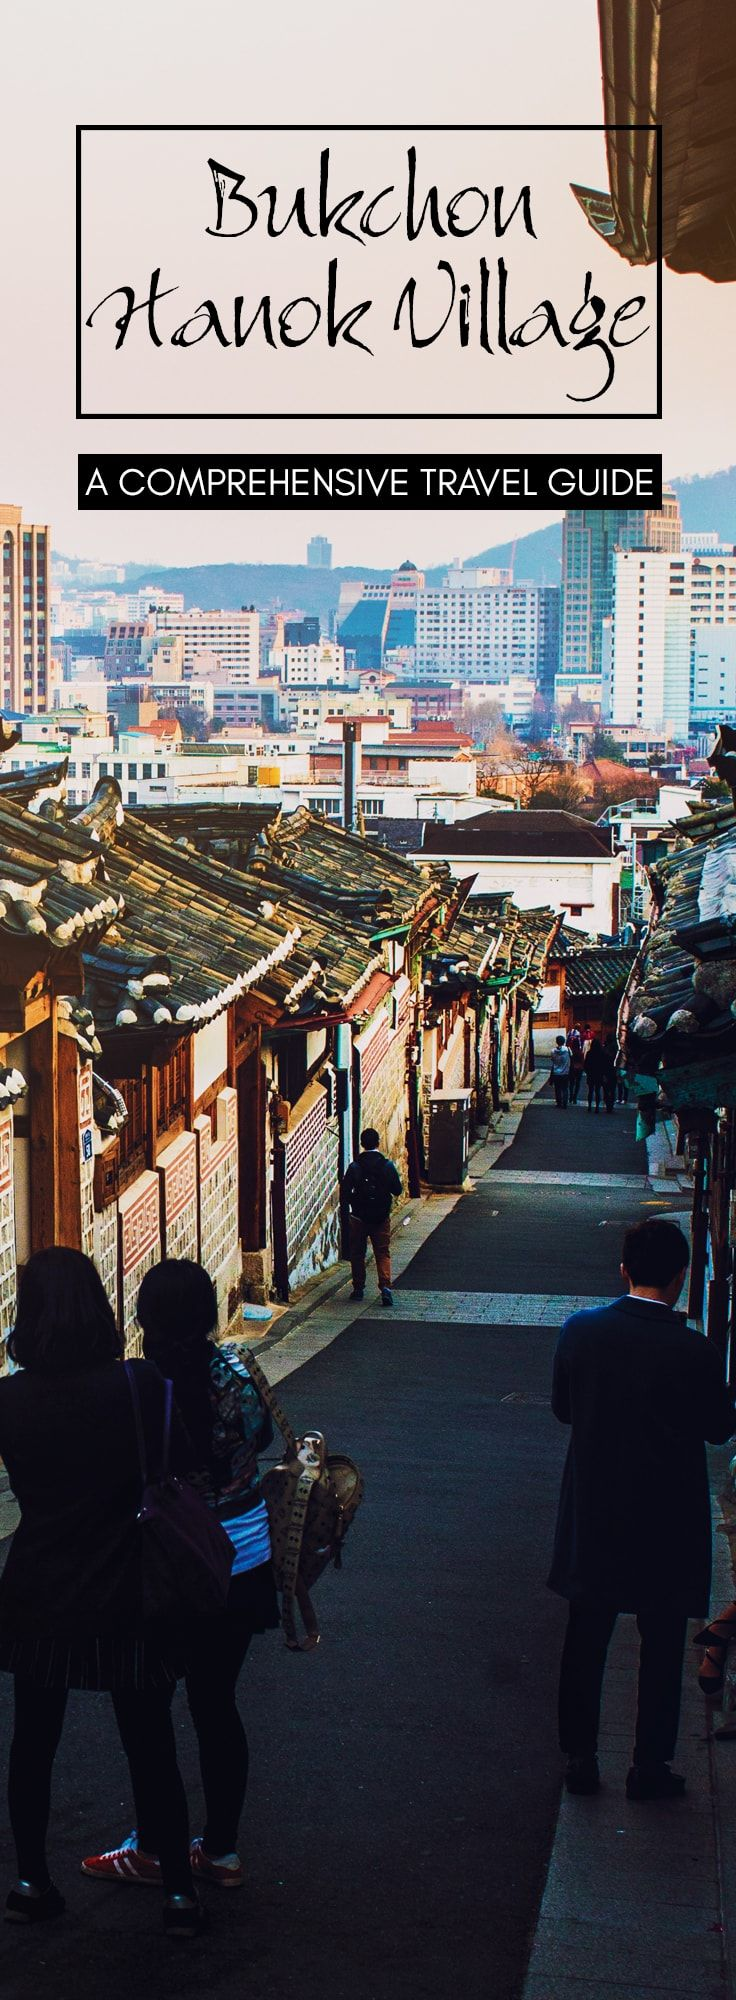 Seoul Travel Guide: Bukchon Hanok Village (북촌한옥마을) is a residential area north of central Seoul, South Korea, between Gyeongbokgung and Changdeokgung palaces. It contains Seoul's largest concentration of hanoks in one area.